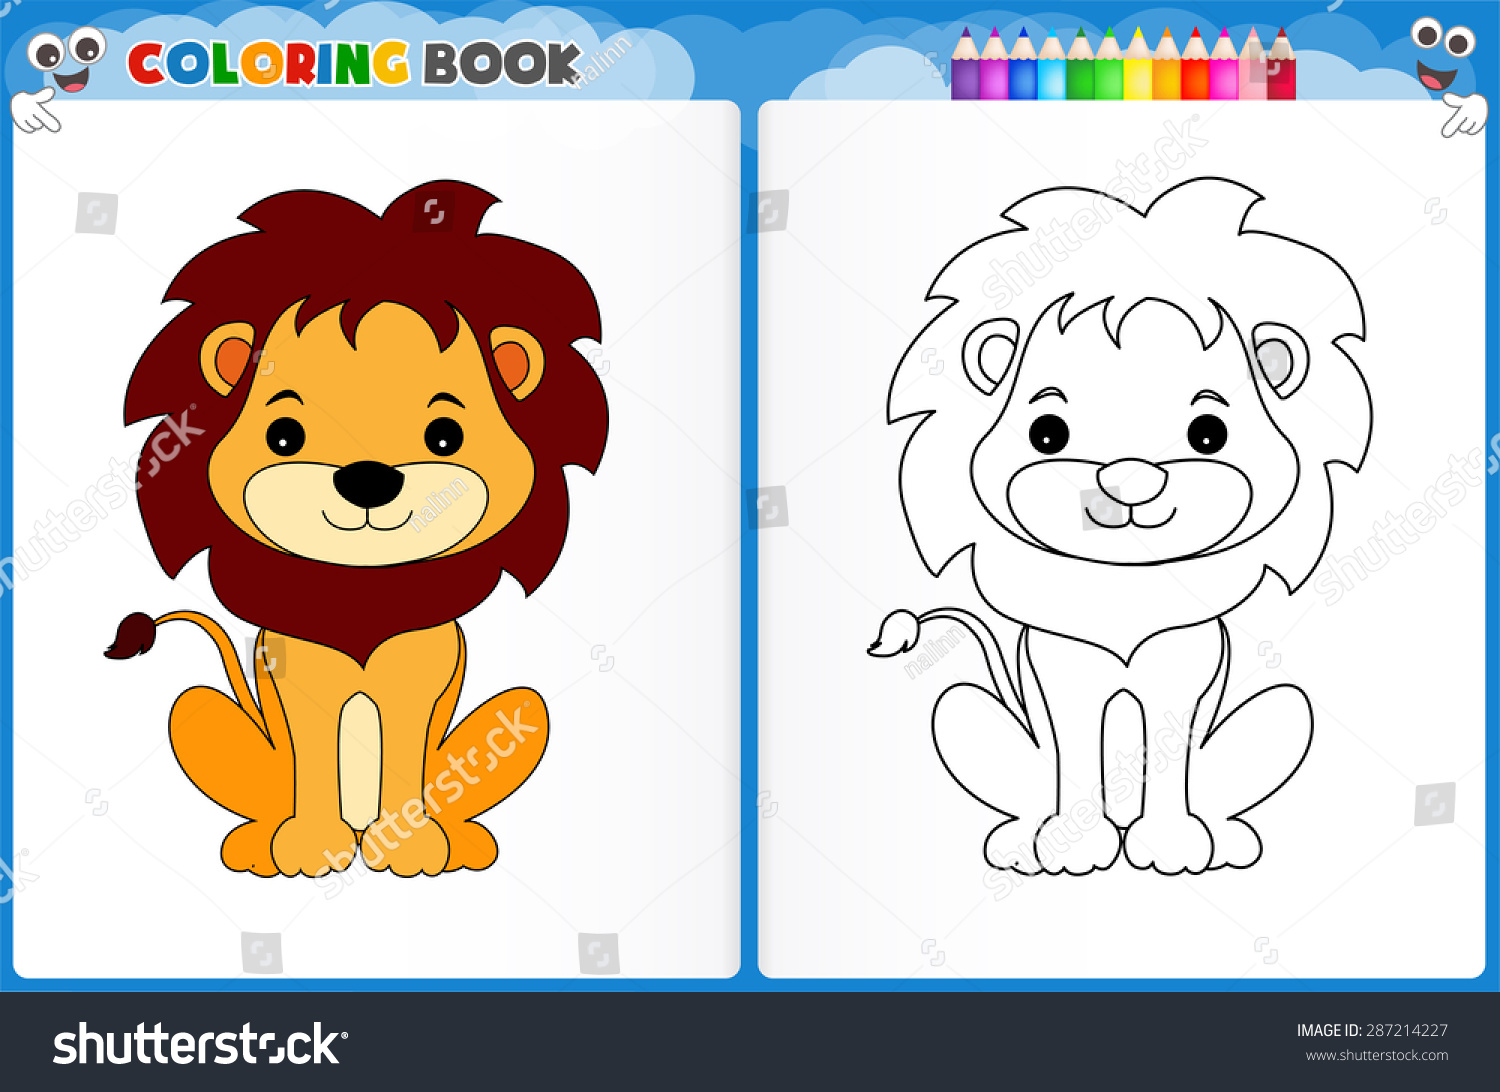 sample coloring pages for kids - photo#2